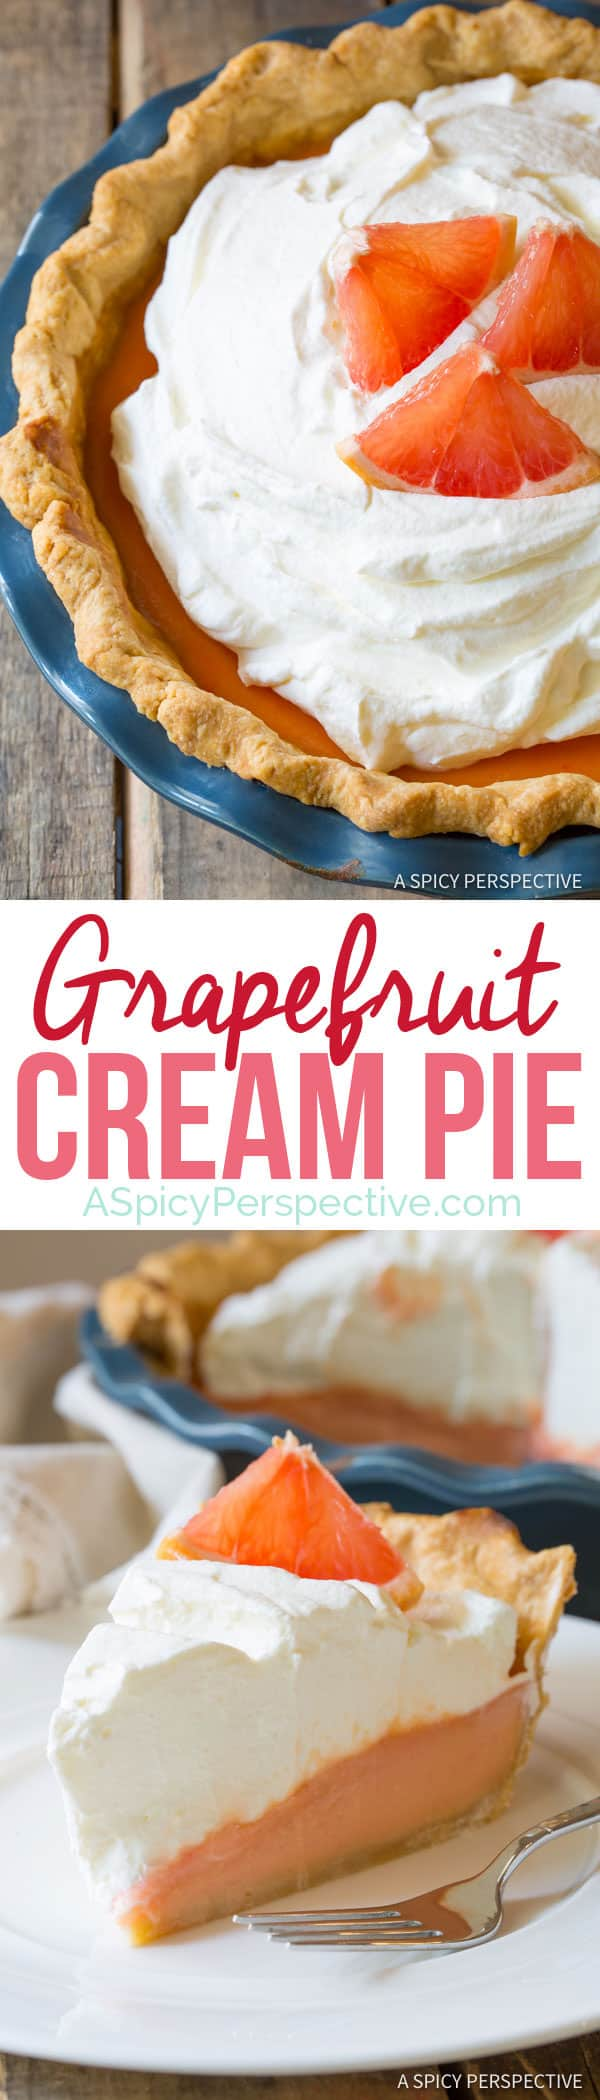 Ruby Red Grapefruit Cream Pie | ASpicyPerspective.com